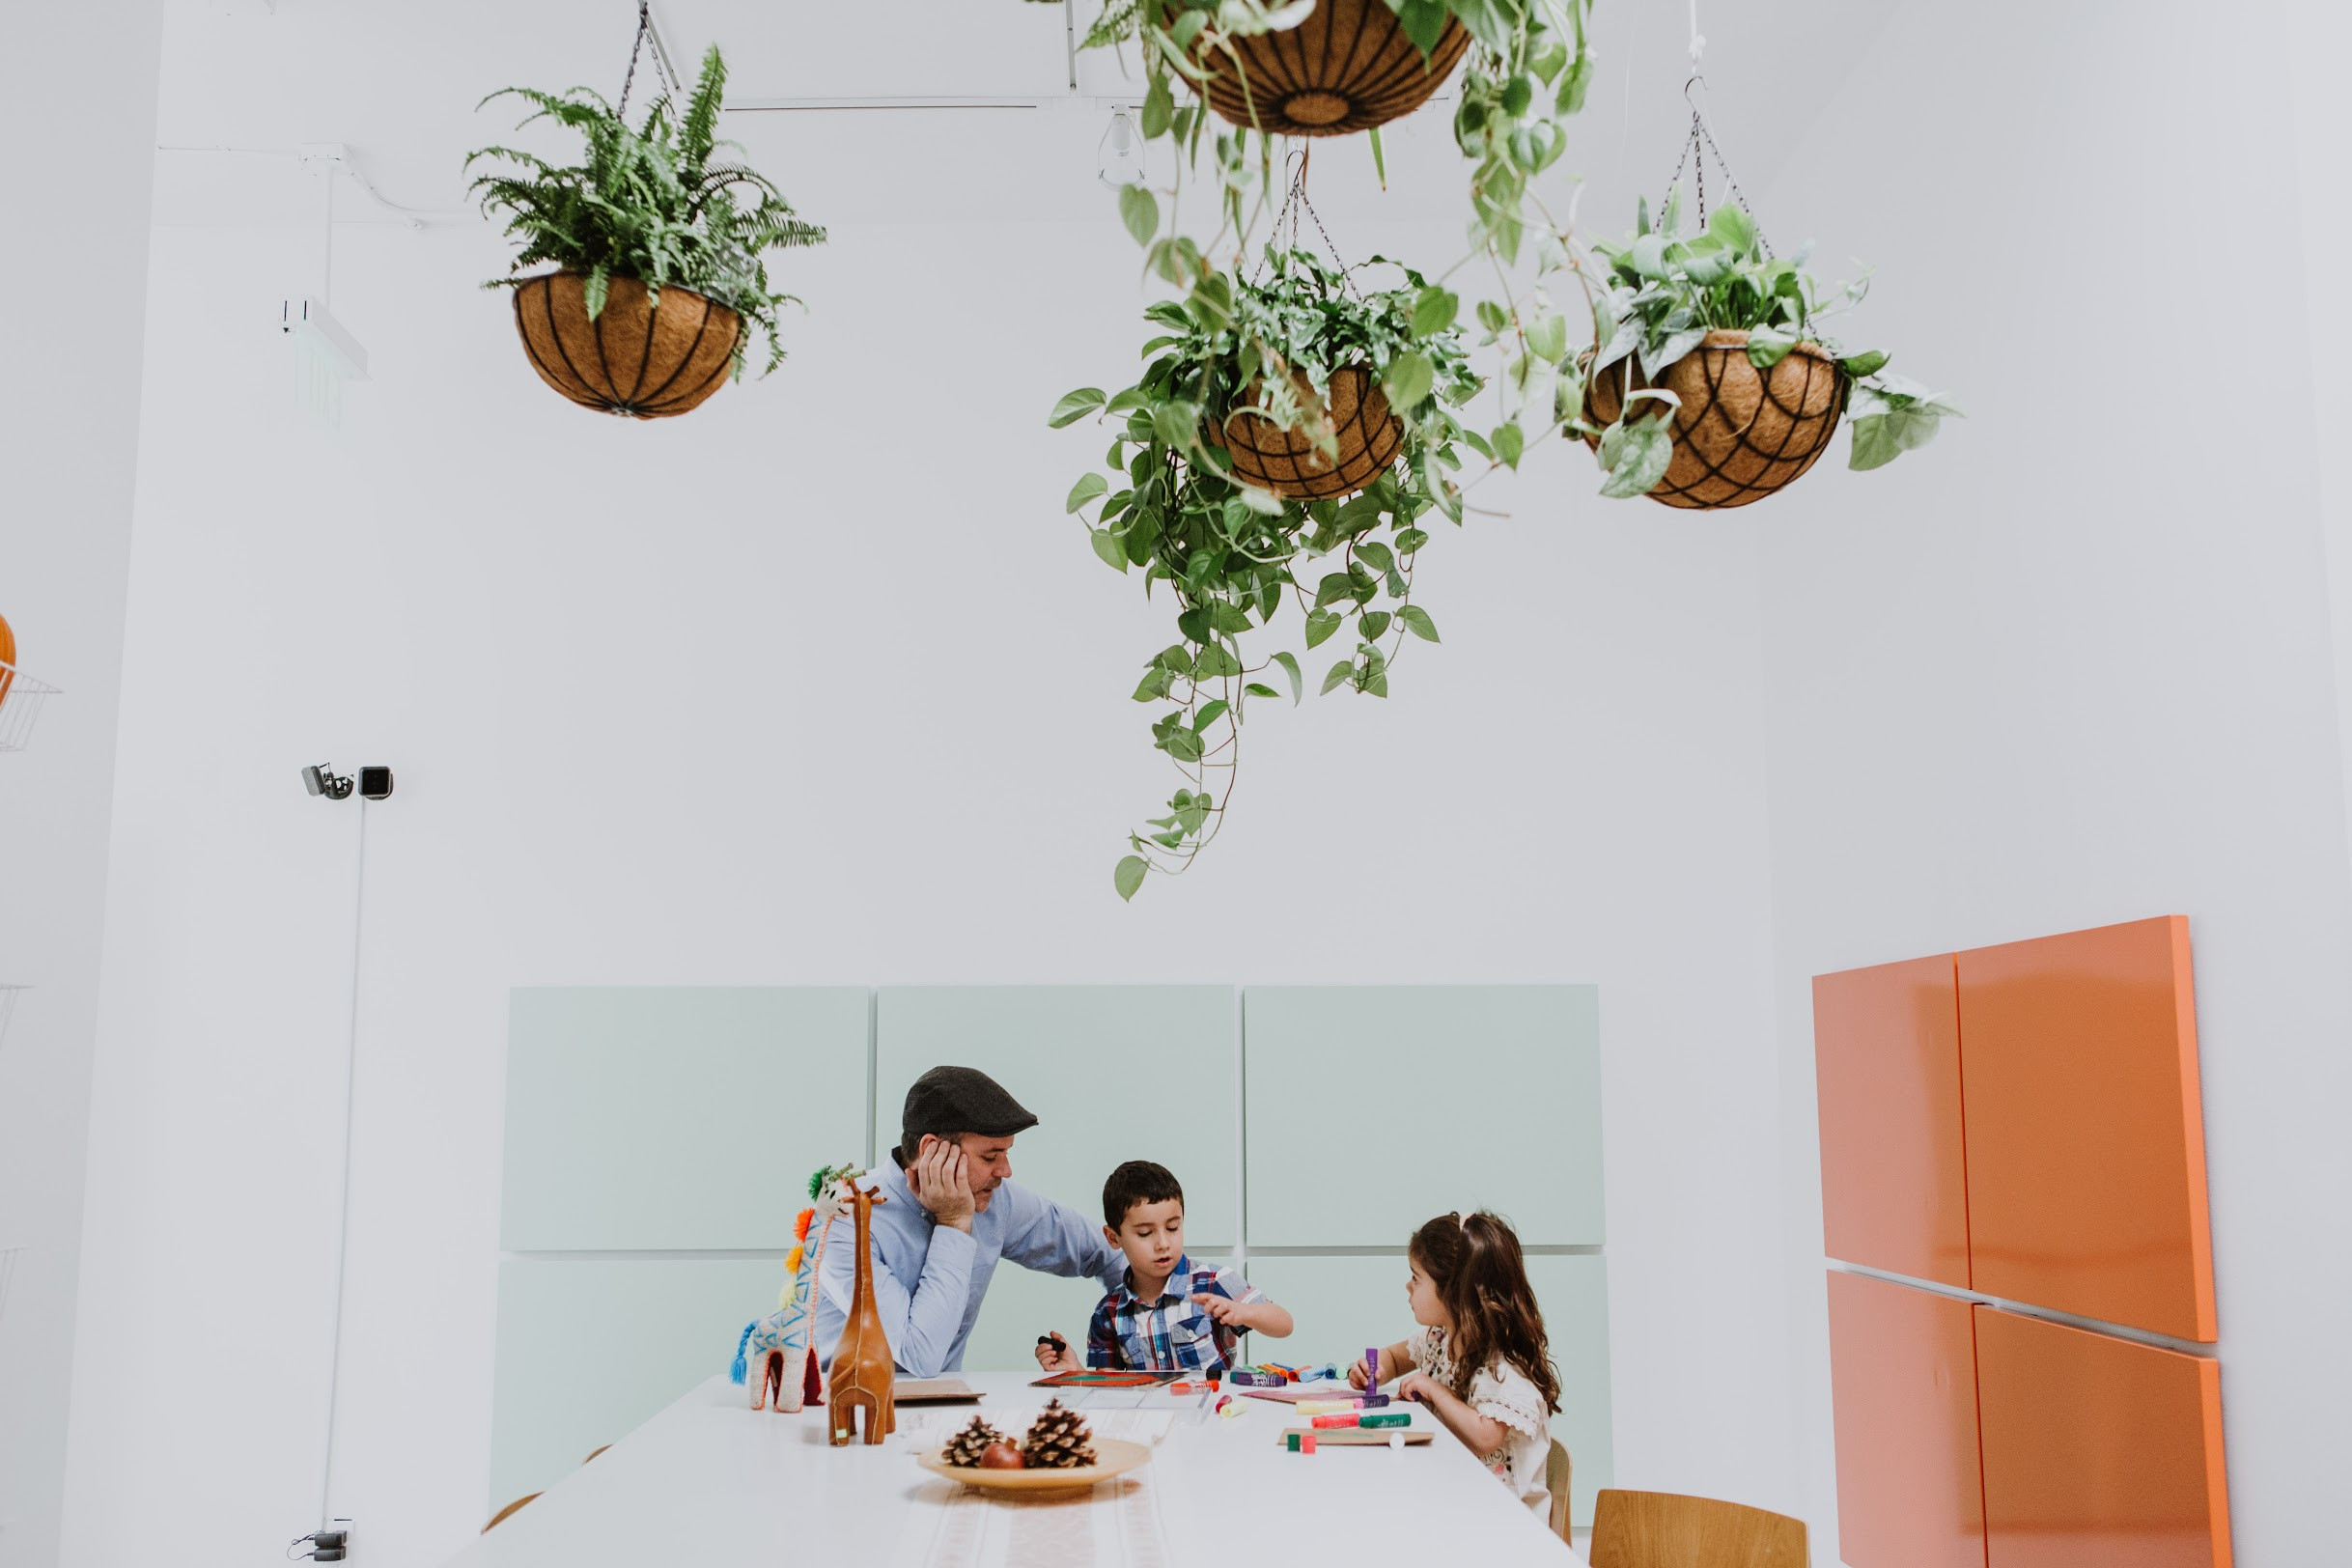 A family exploring Chiqui Social's kitchen space. Photo Credit: Chiqui Social